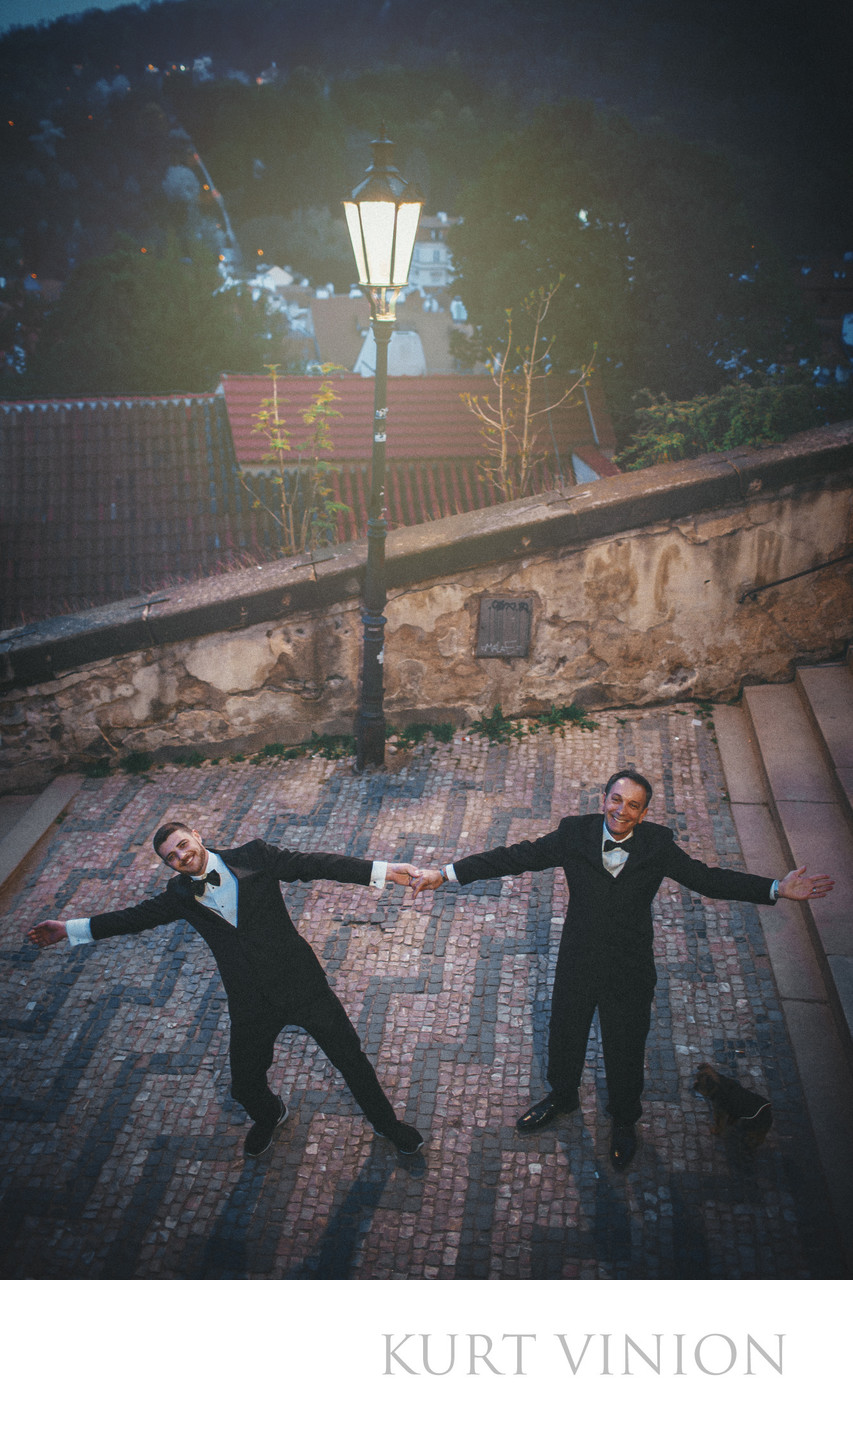 that 'campy' portrait of 2 Men in Tuxedos in Prague